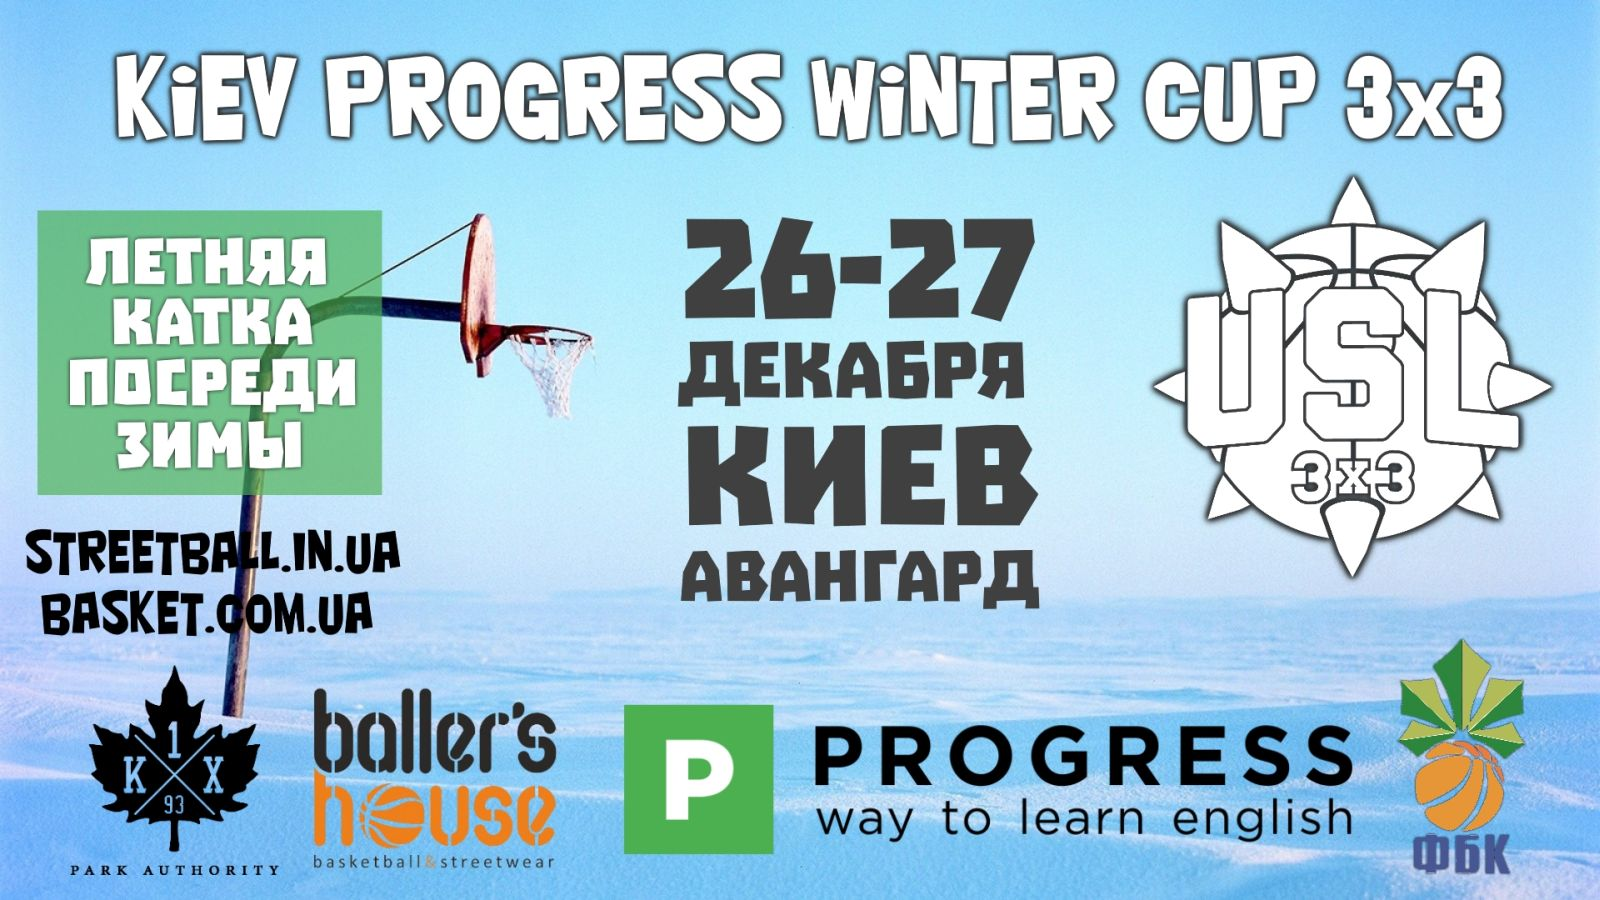 УСЛ «Kiev Progress Winter Cup 3x3»